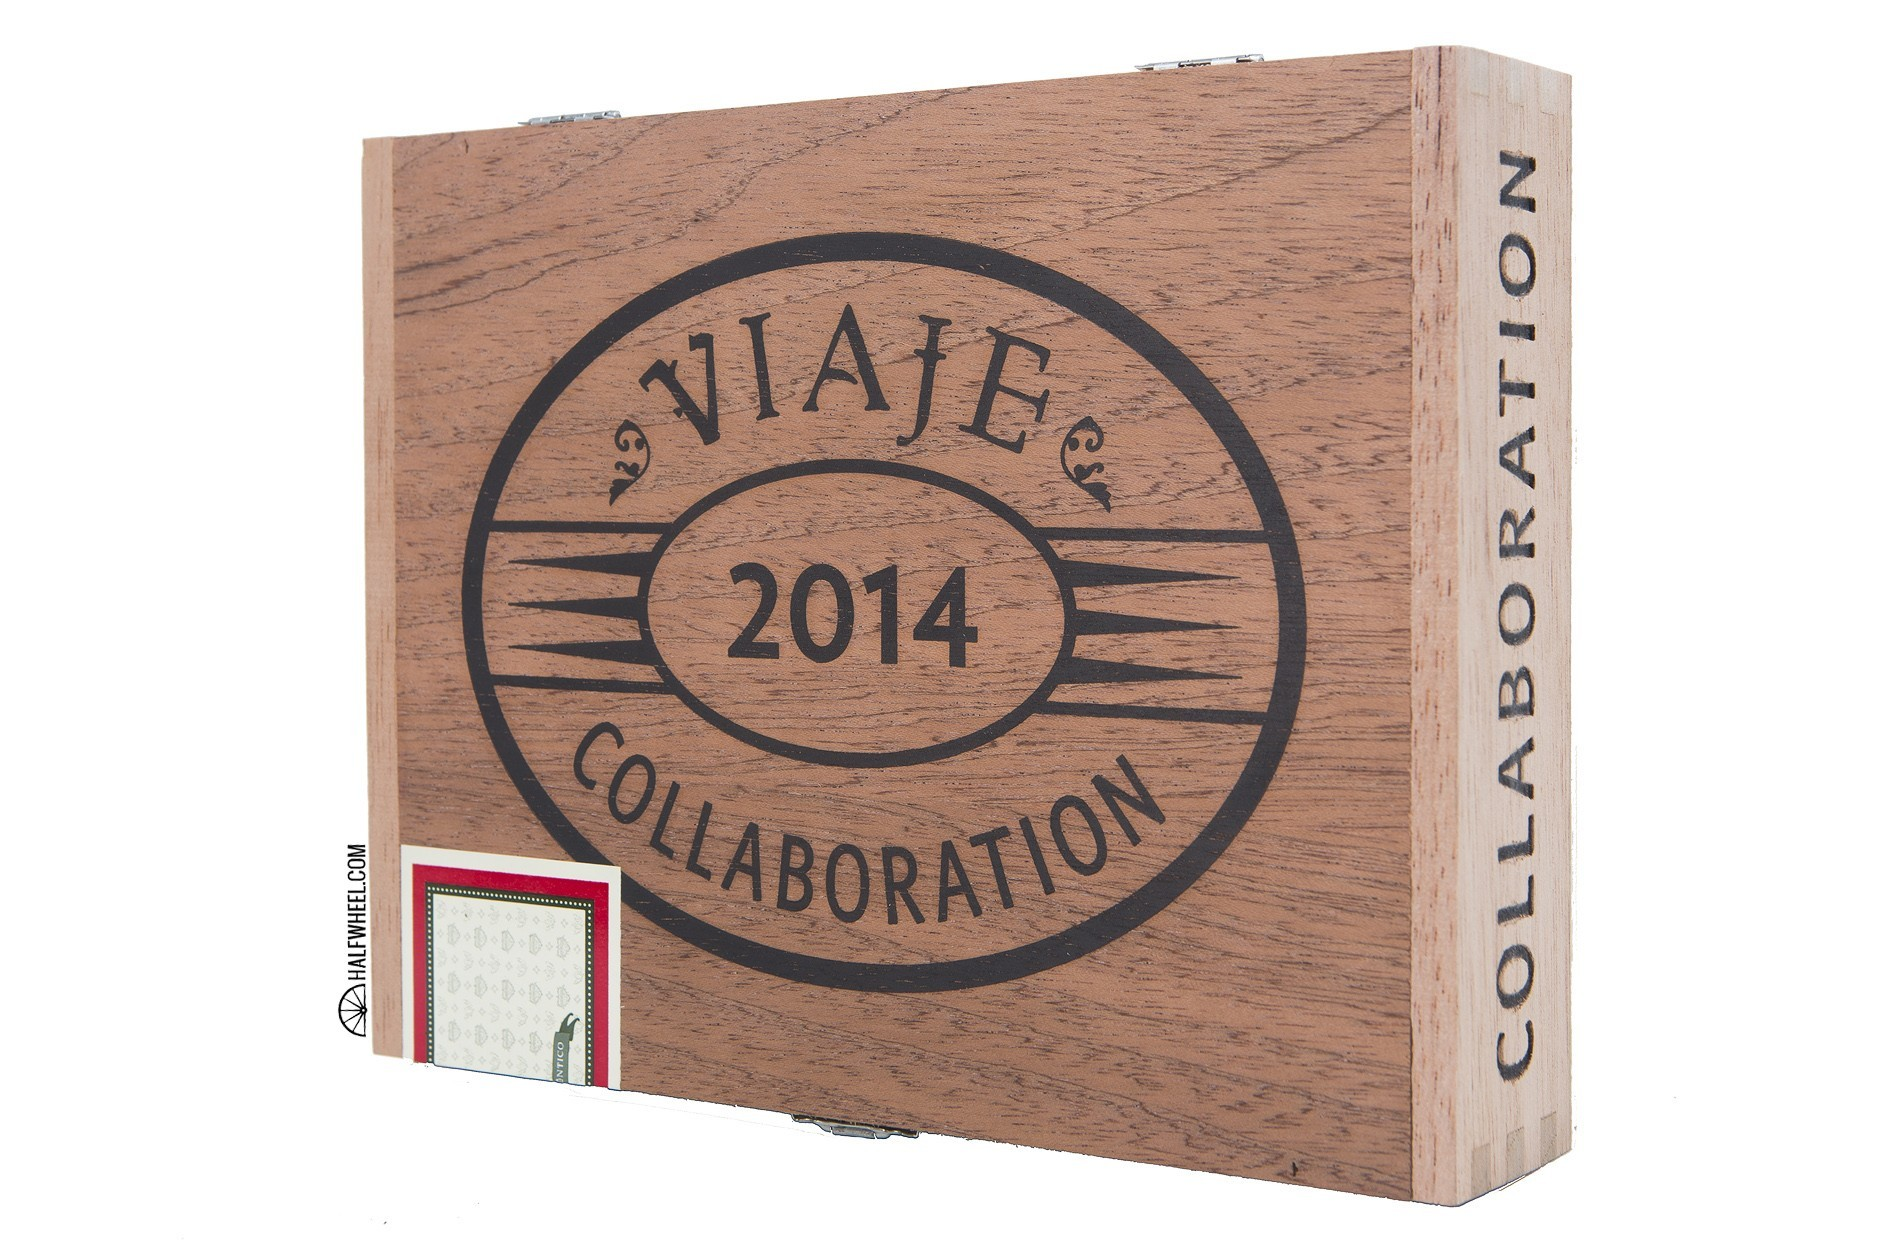 Viaje Collaboration 2014 Box 1